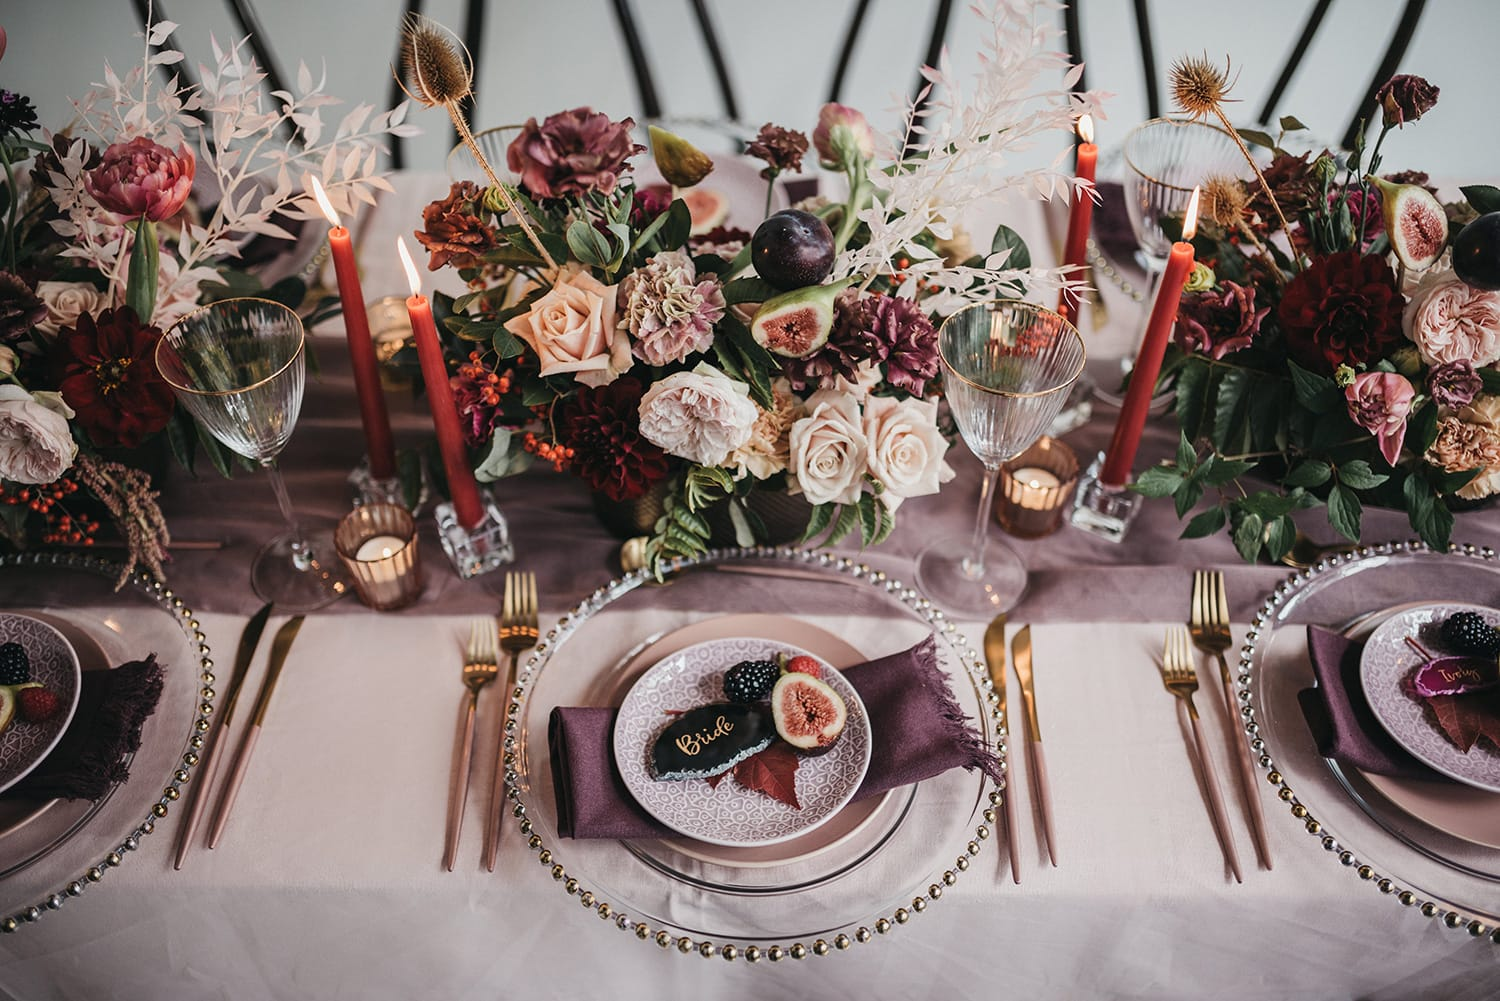 Industrial Chic Wedding Inspiration in Berry Hues | Photography: Loop Studios